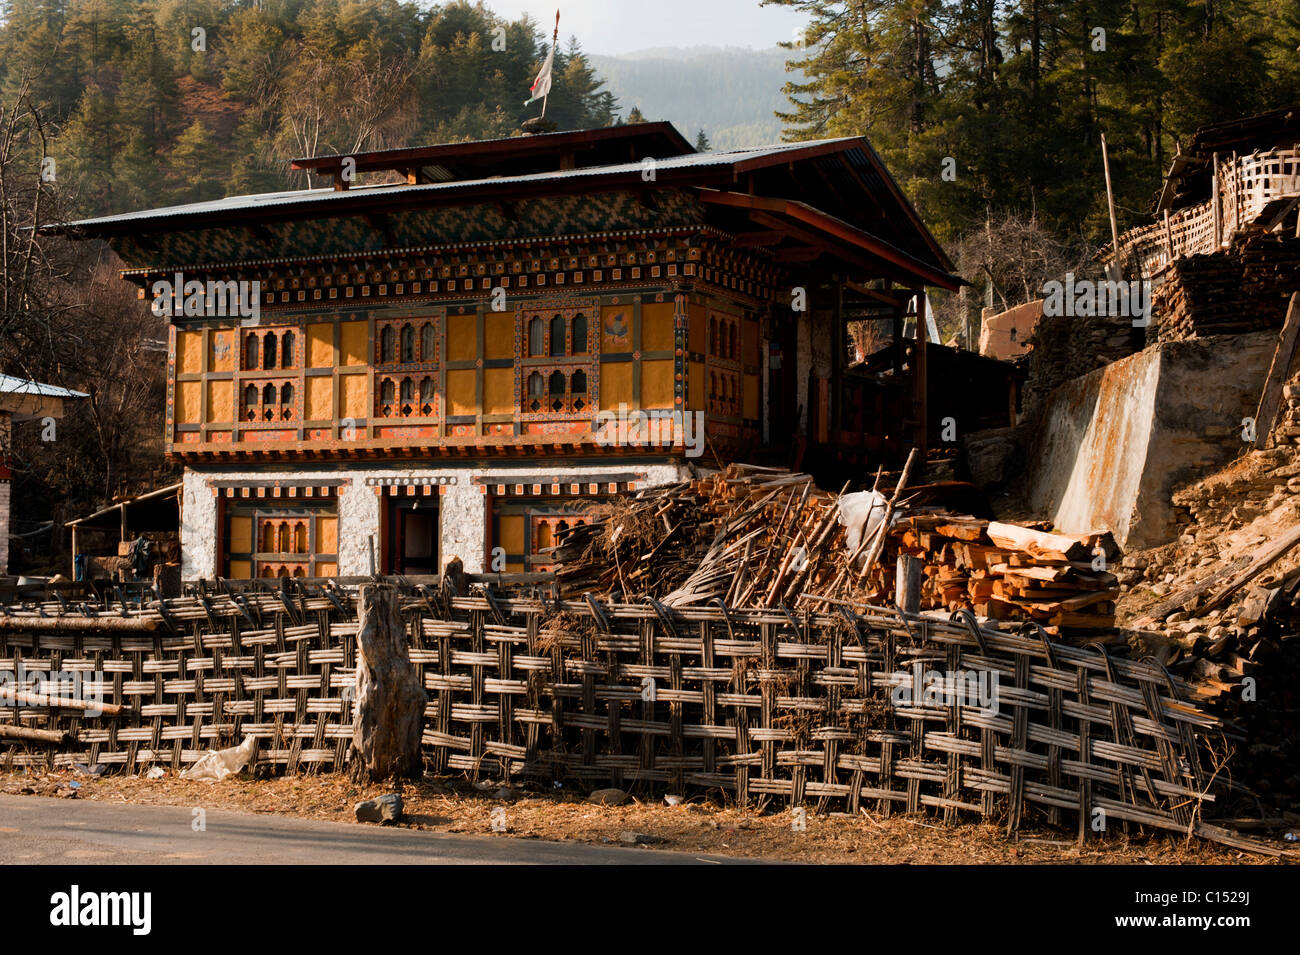 Traditional Bhutanese house in rural Bhutan with wooden details and traditonal bamboo fence. - Stock Image